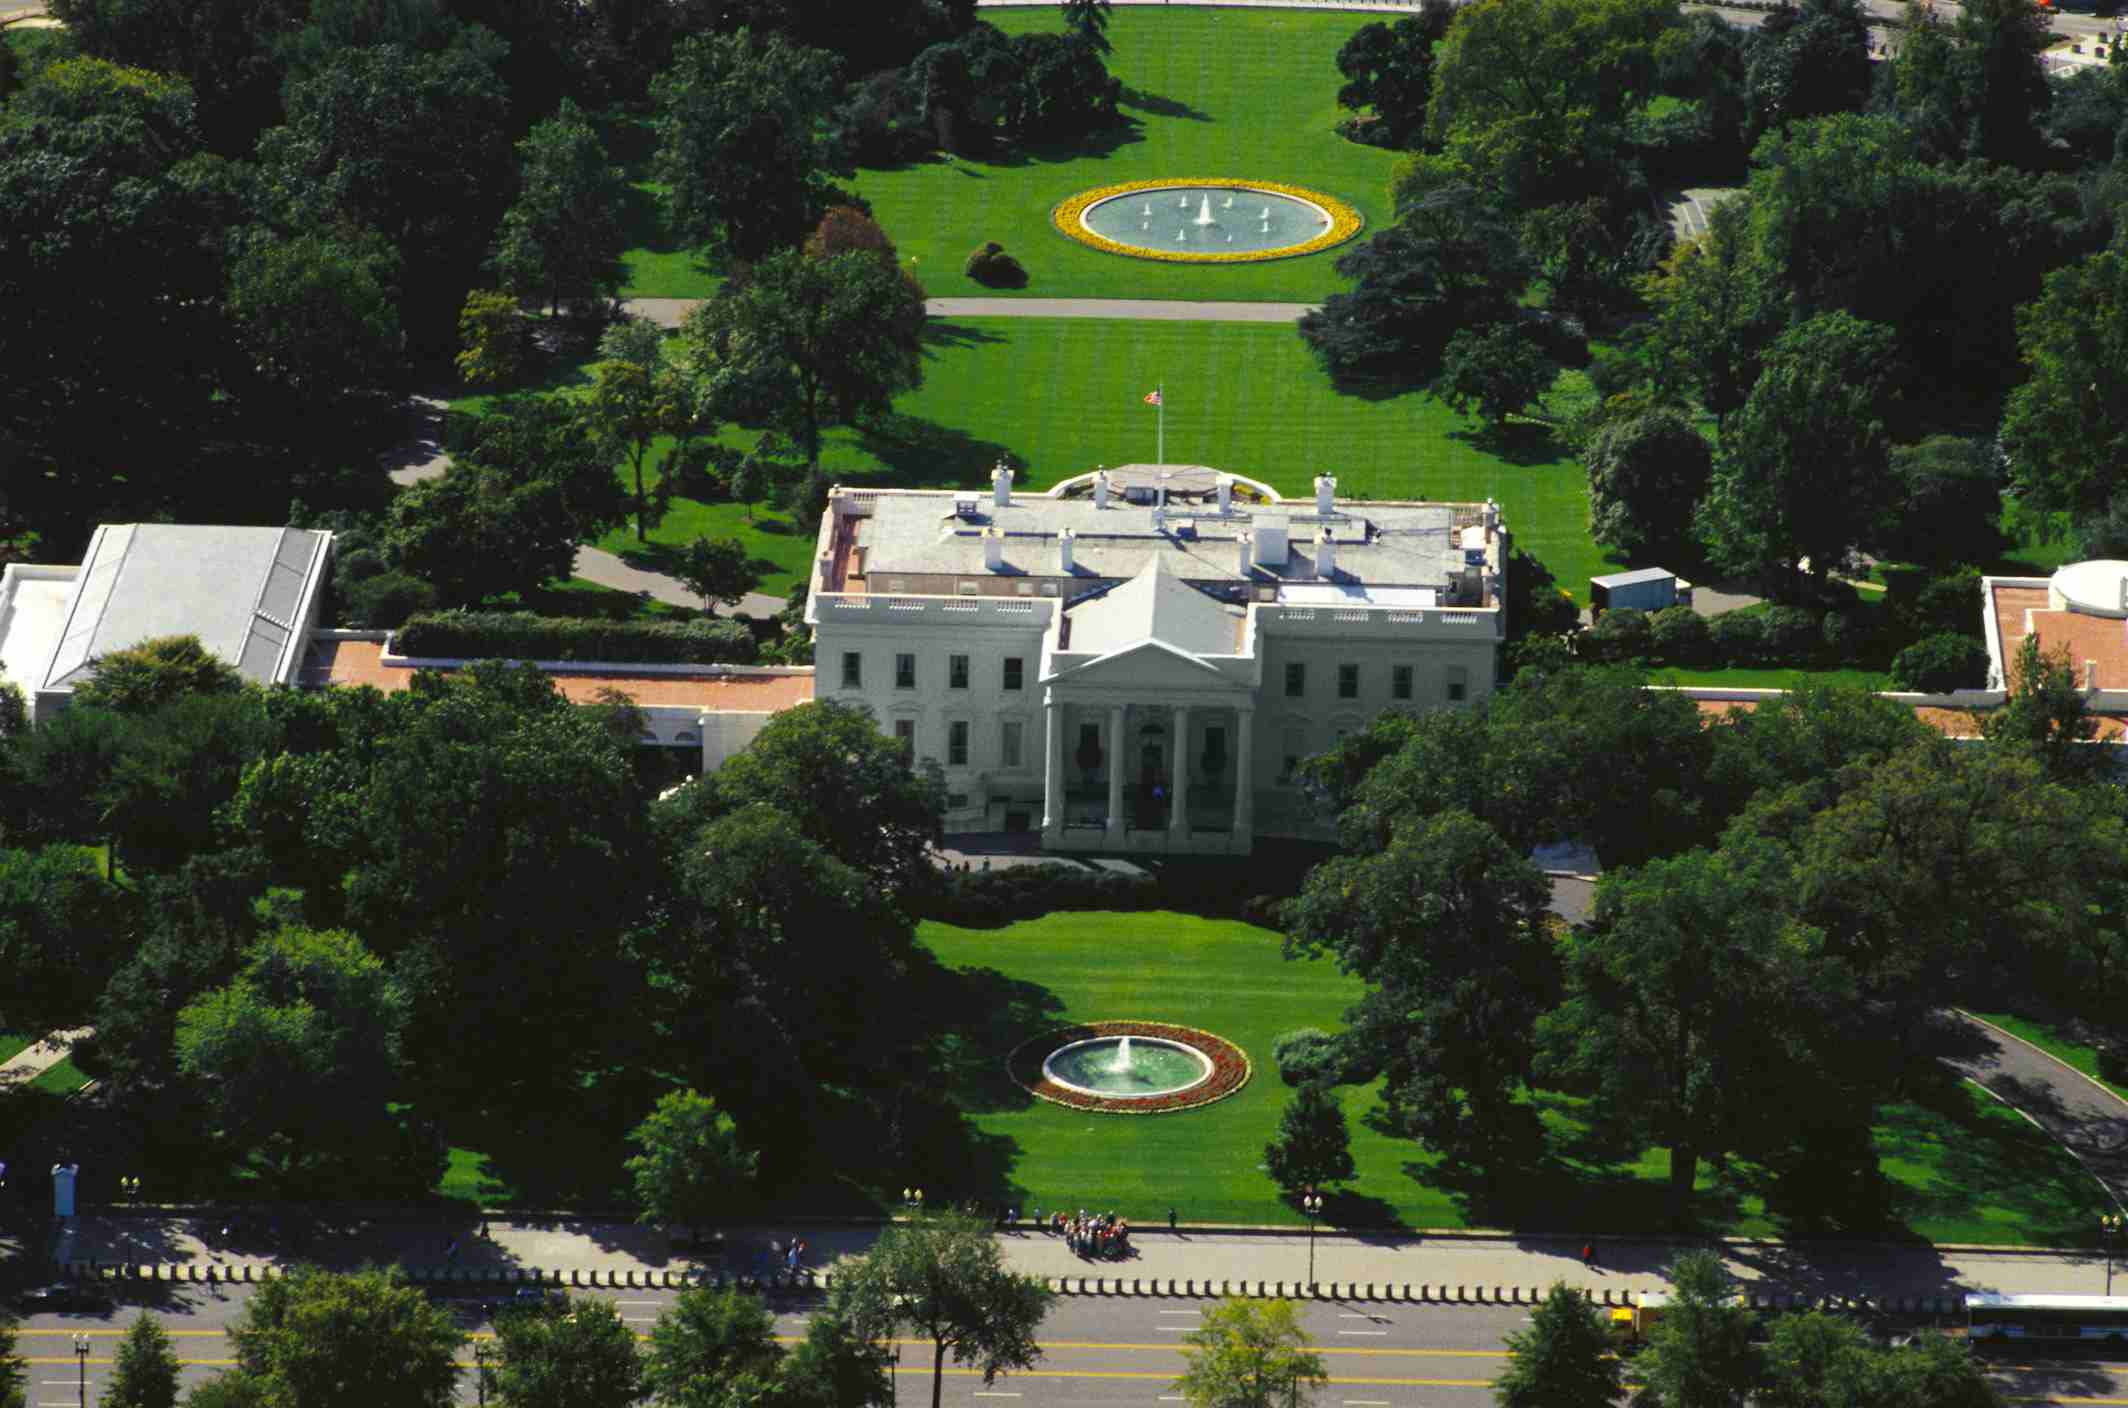 Tremendous White House Photos Interior And Exterior Download Free Architecture Designs Scobabritishbridgeorg